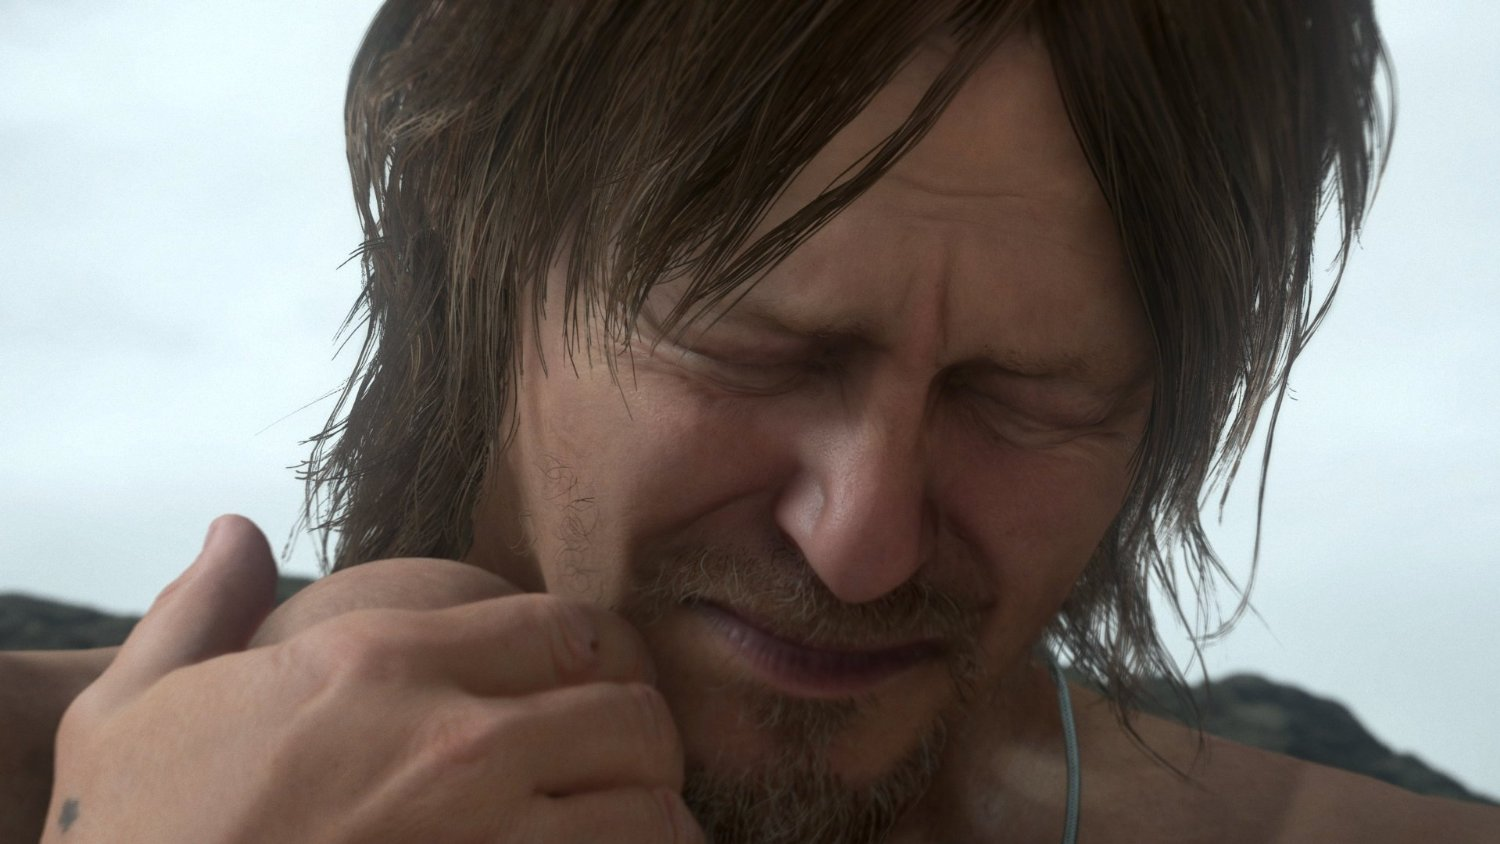 death-stranding-trailer-with-norman-reedus-blows-up-internet